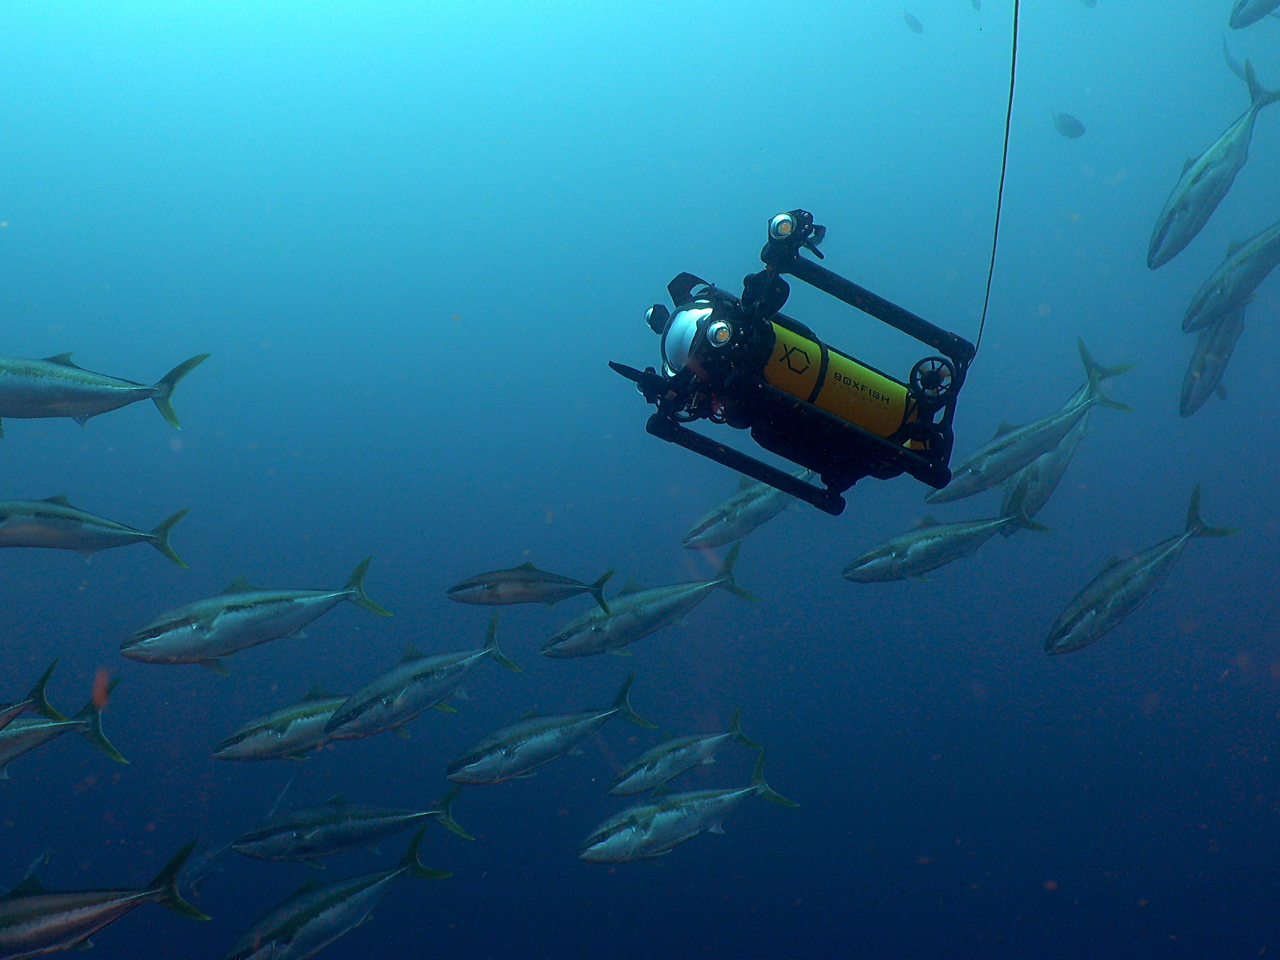 Boxfish Research, introduces its latest technological advancement in underwater filmmaking | The next-generation Boxfish cinematography drone delivers full-frame, 8K video from 1,000 meters depth